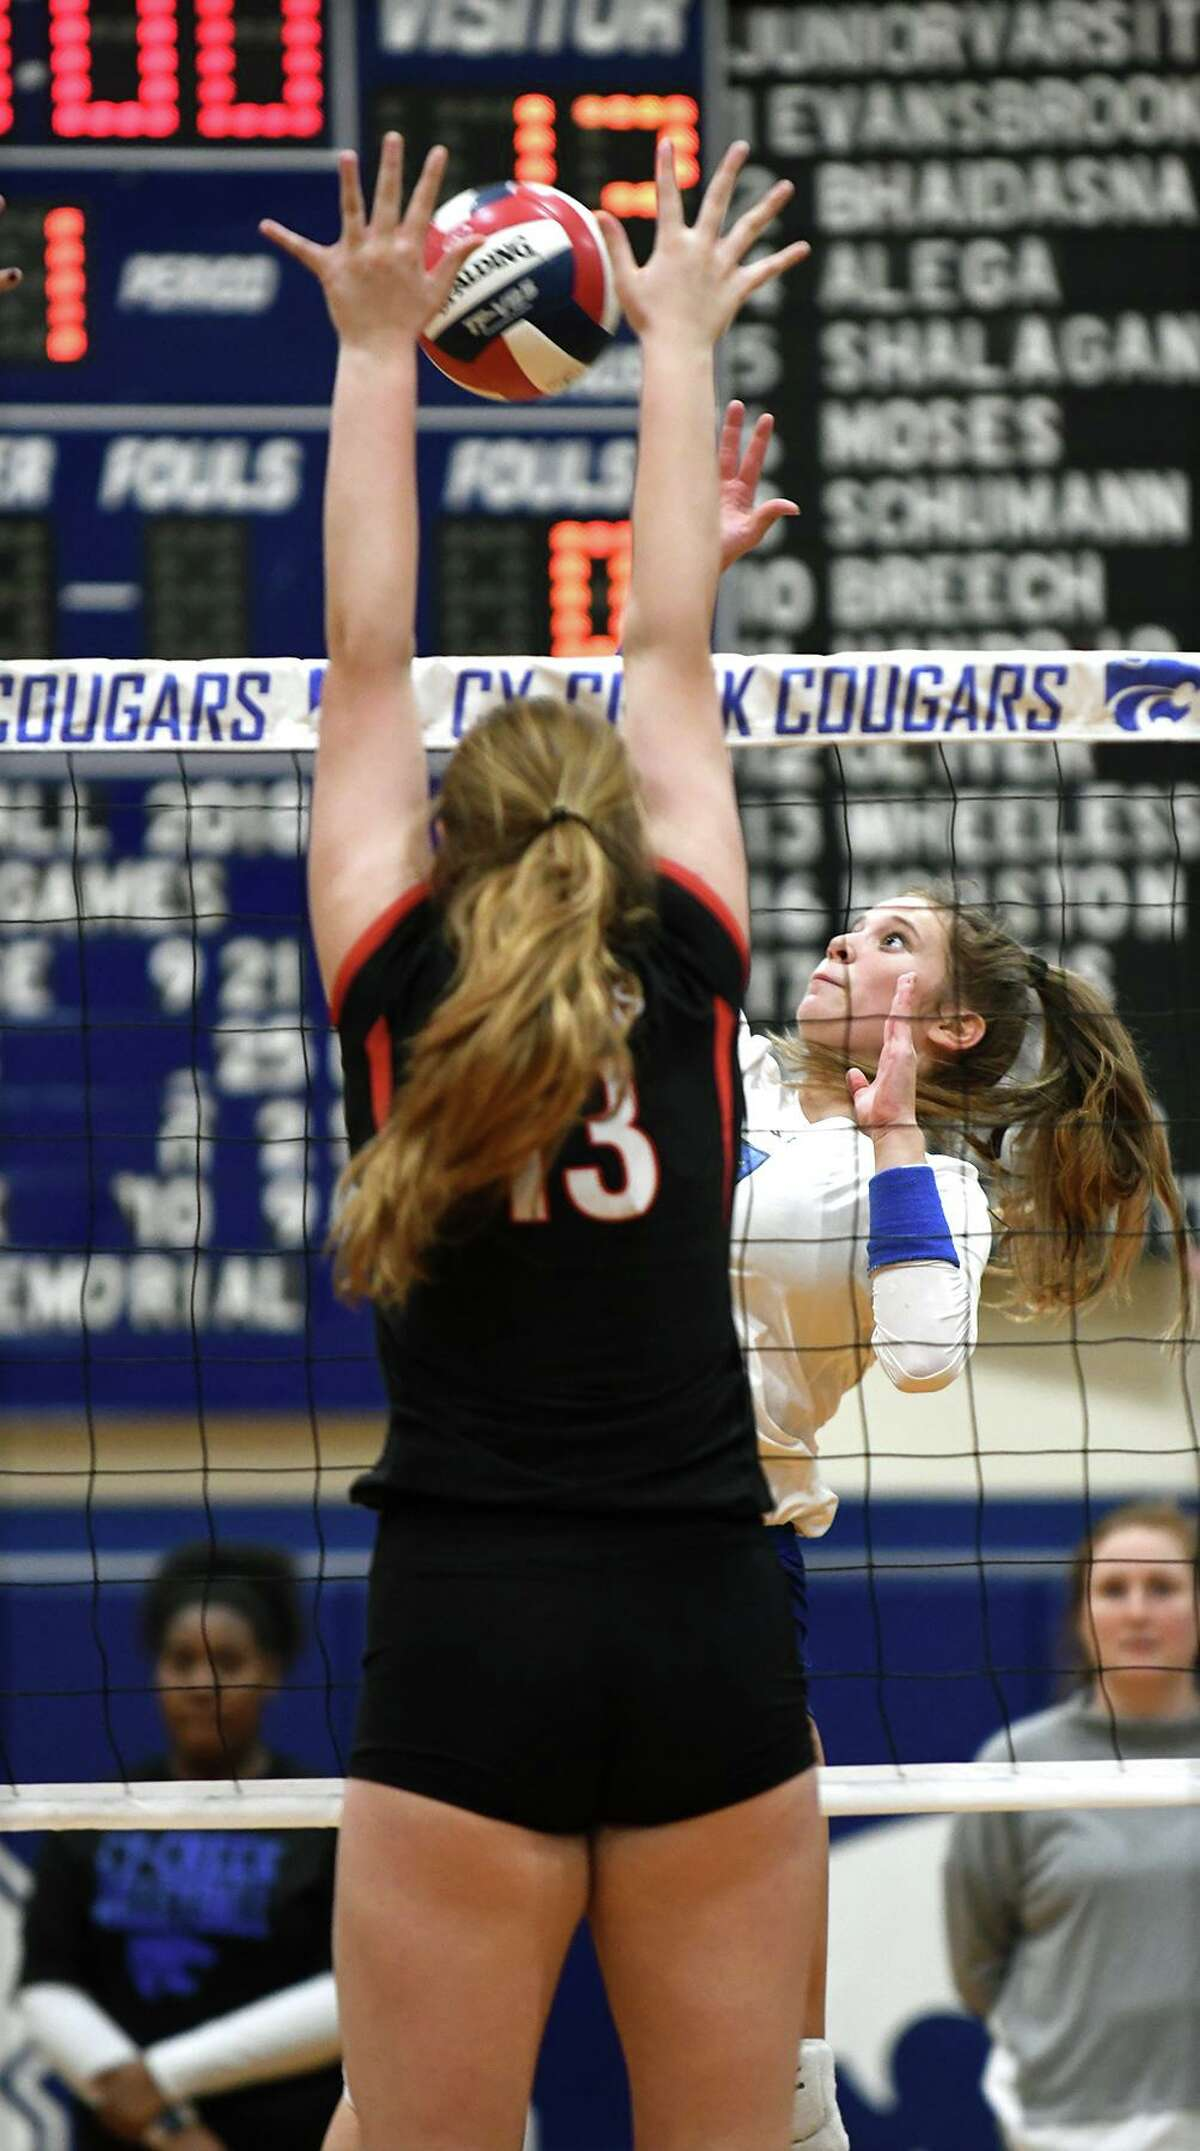 Cy Creek junior outside hitter Alex Evans-Brooks, right, battles at the net against Memorial sophomore right side Logan LeRoux (13) during the first set of their District 17-6A matchup at Cy Creek High School on October 19, 2018.